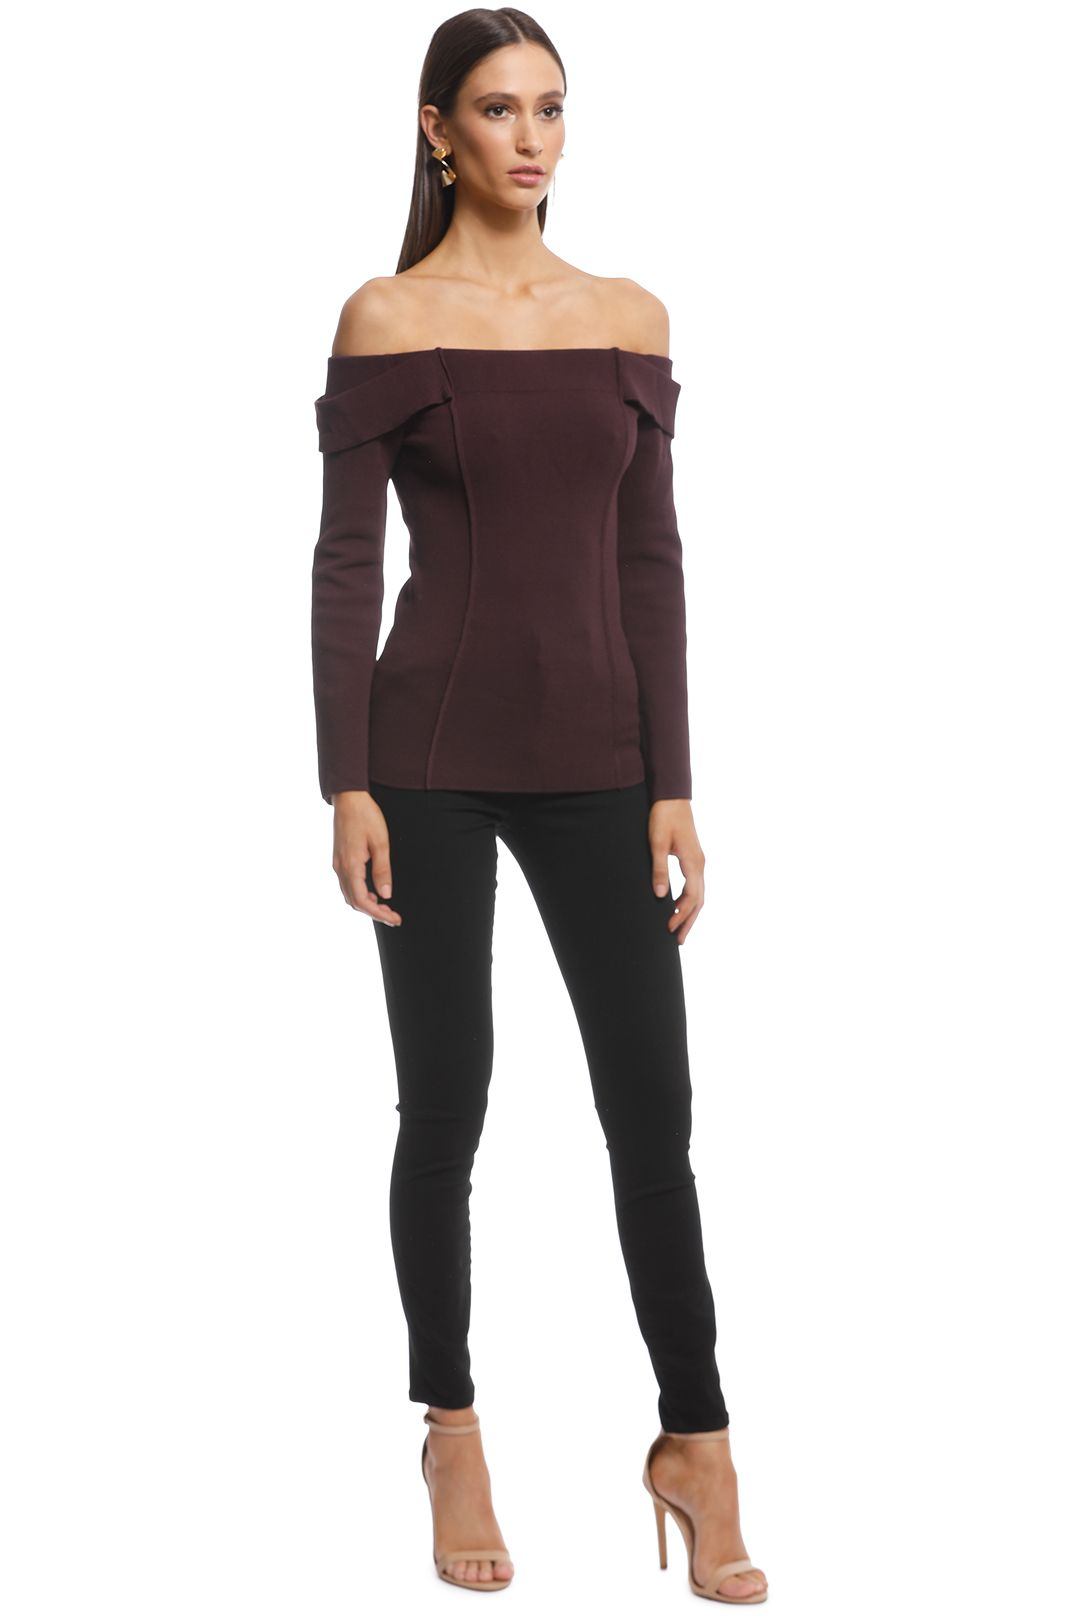 Camilla and Marc - Carole Knit Top - Burgundy - Side